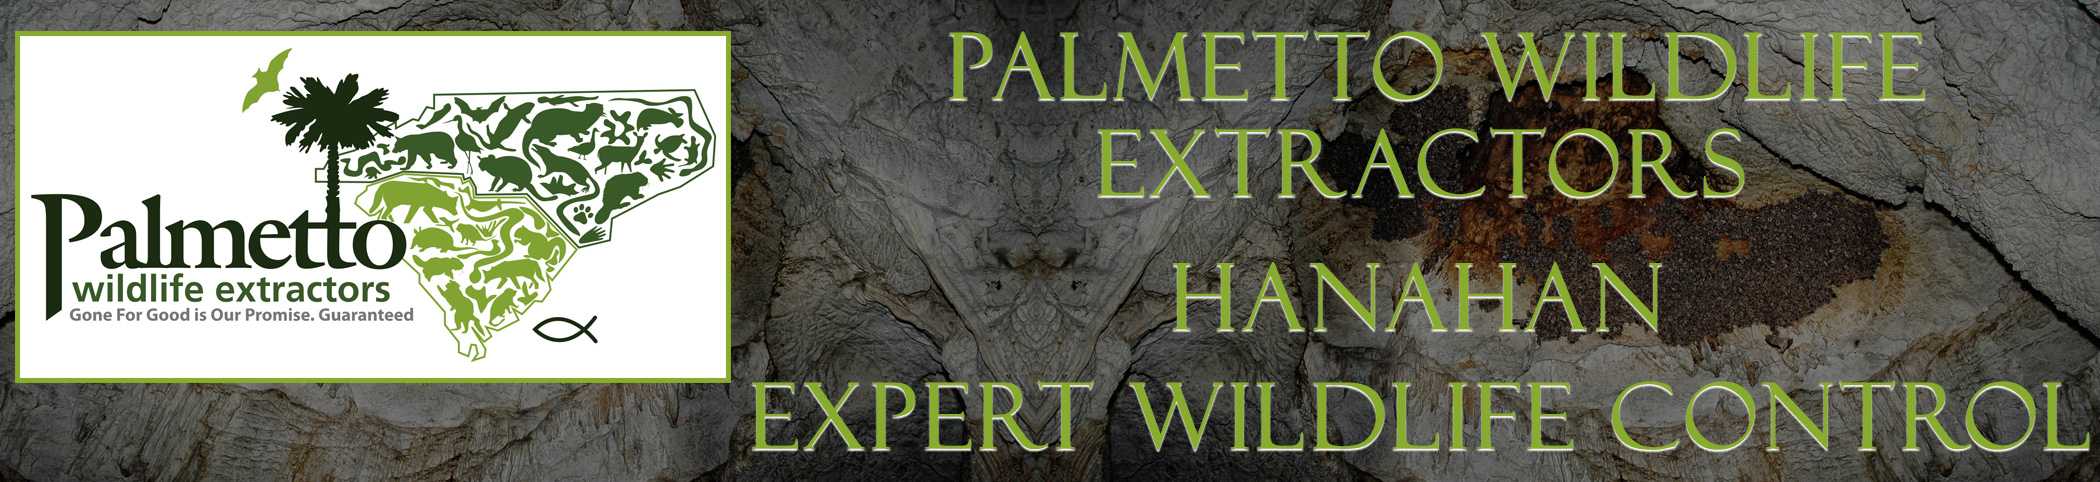 Palmetto Wildlife Extractors Hanahan south carolina header image